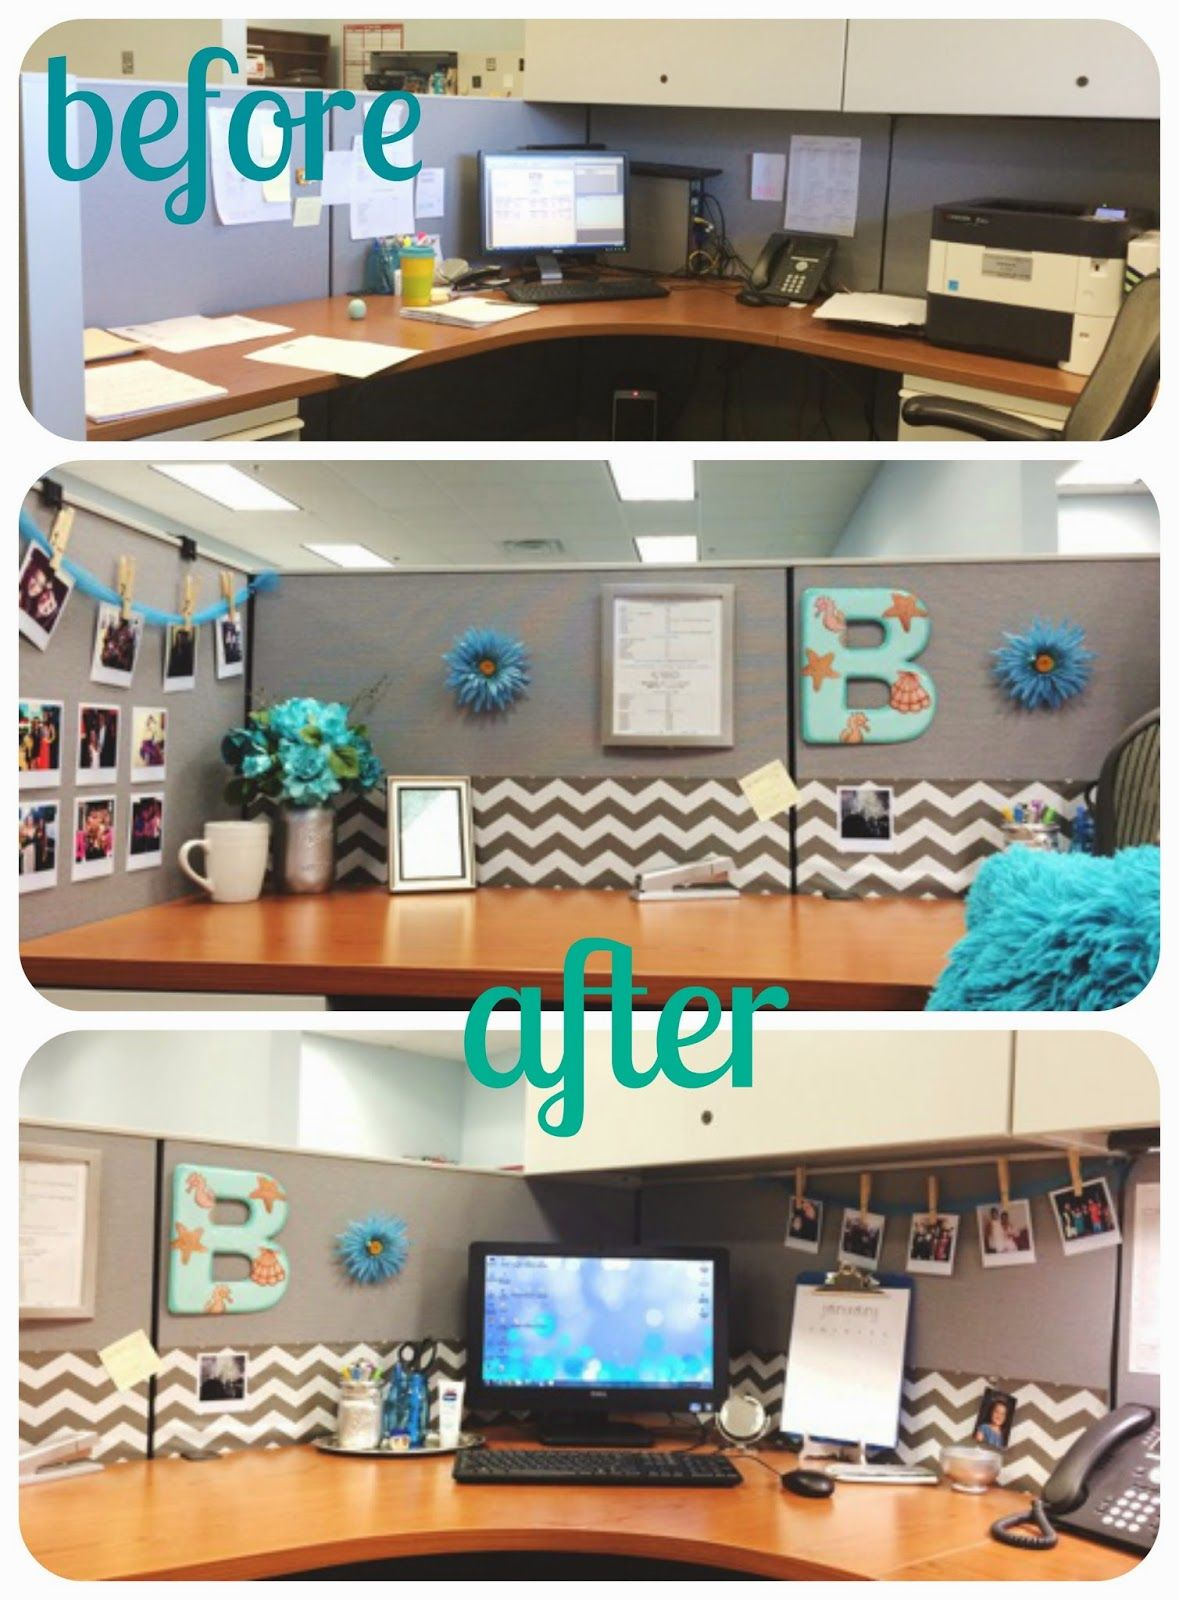 Work Office Decorating Ideas Pictures Best 25 43 The Cubicle Ideas On Pinterest Work Office